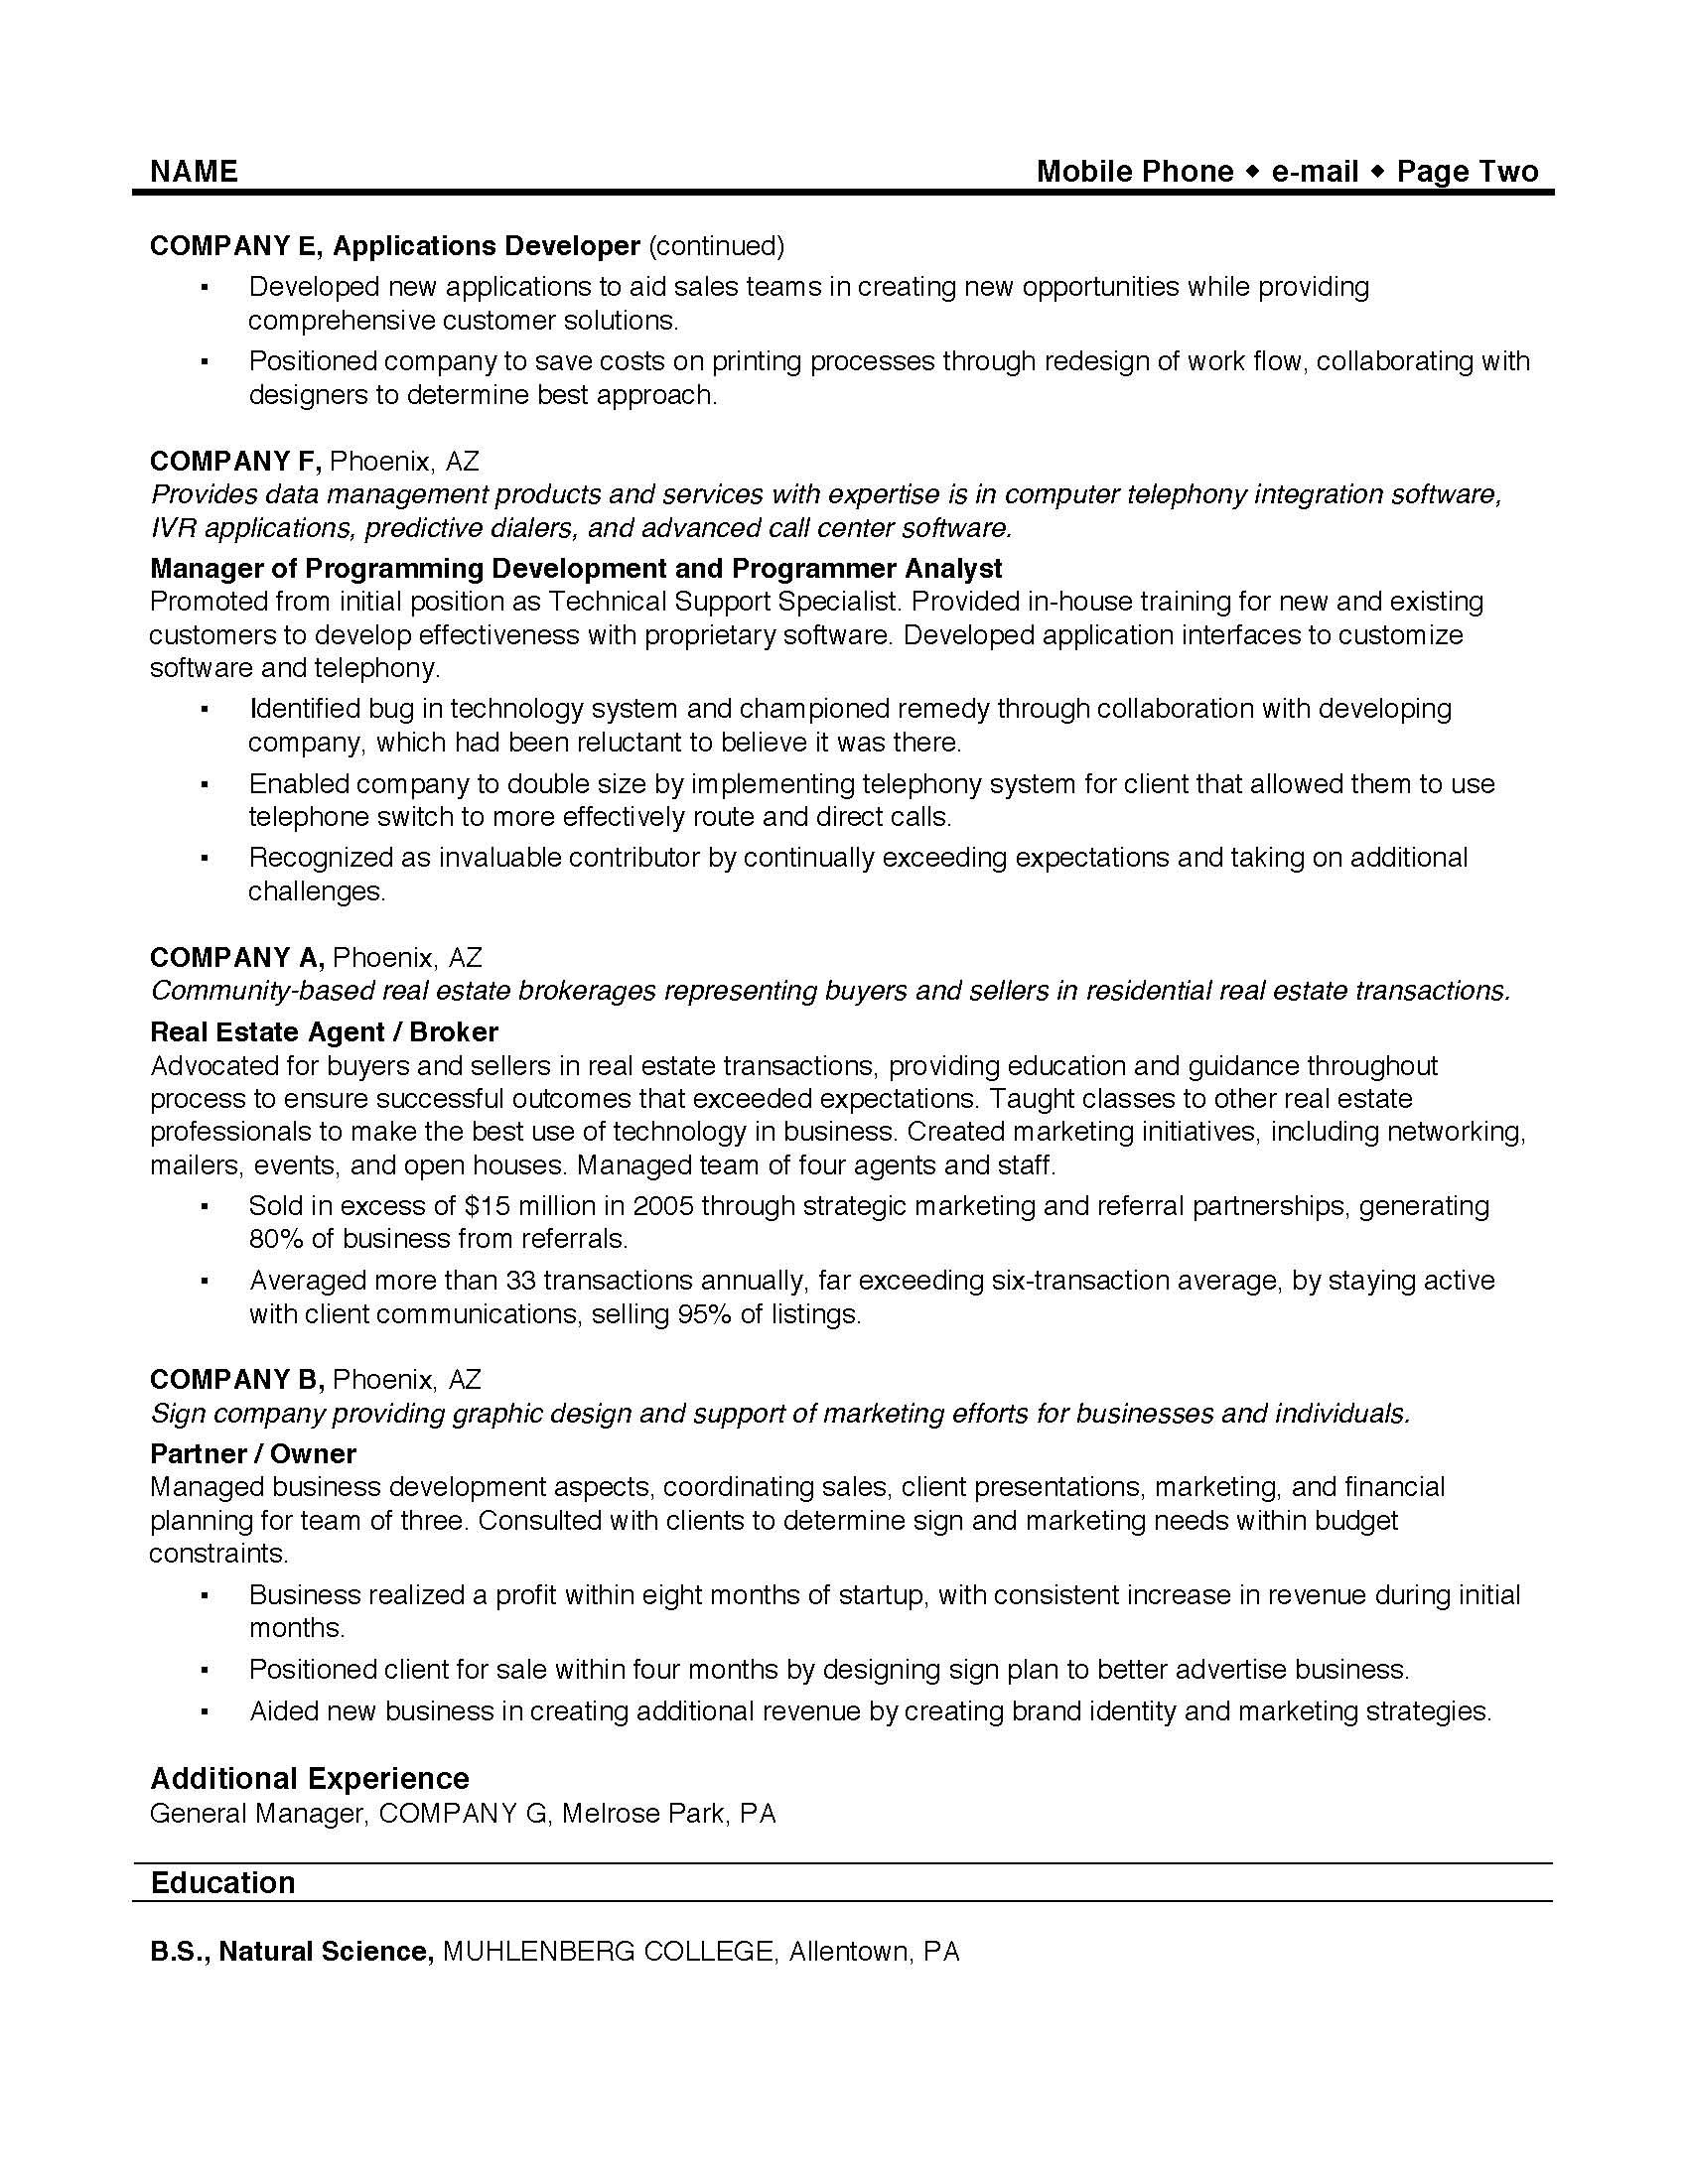 Sample Resume For College Student Pics Photos Sample College Student Resume Examples Samples Resumes